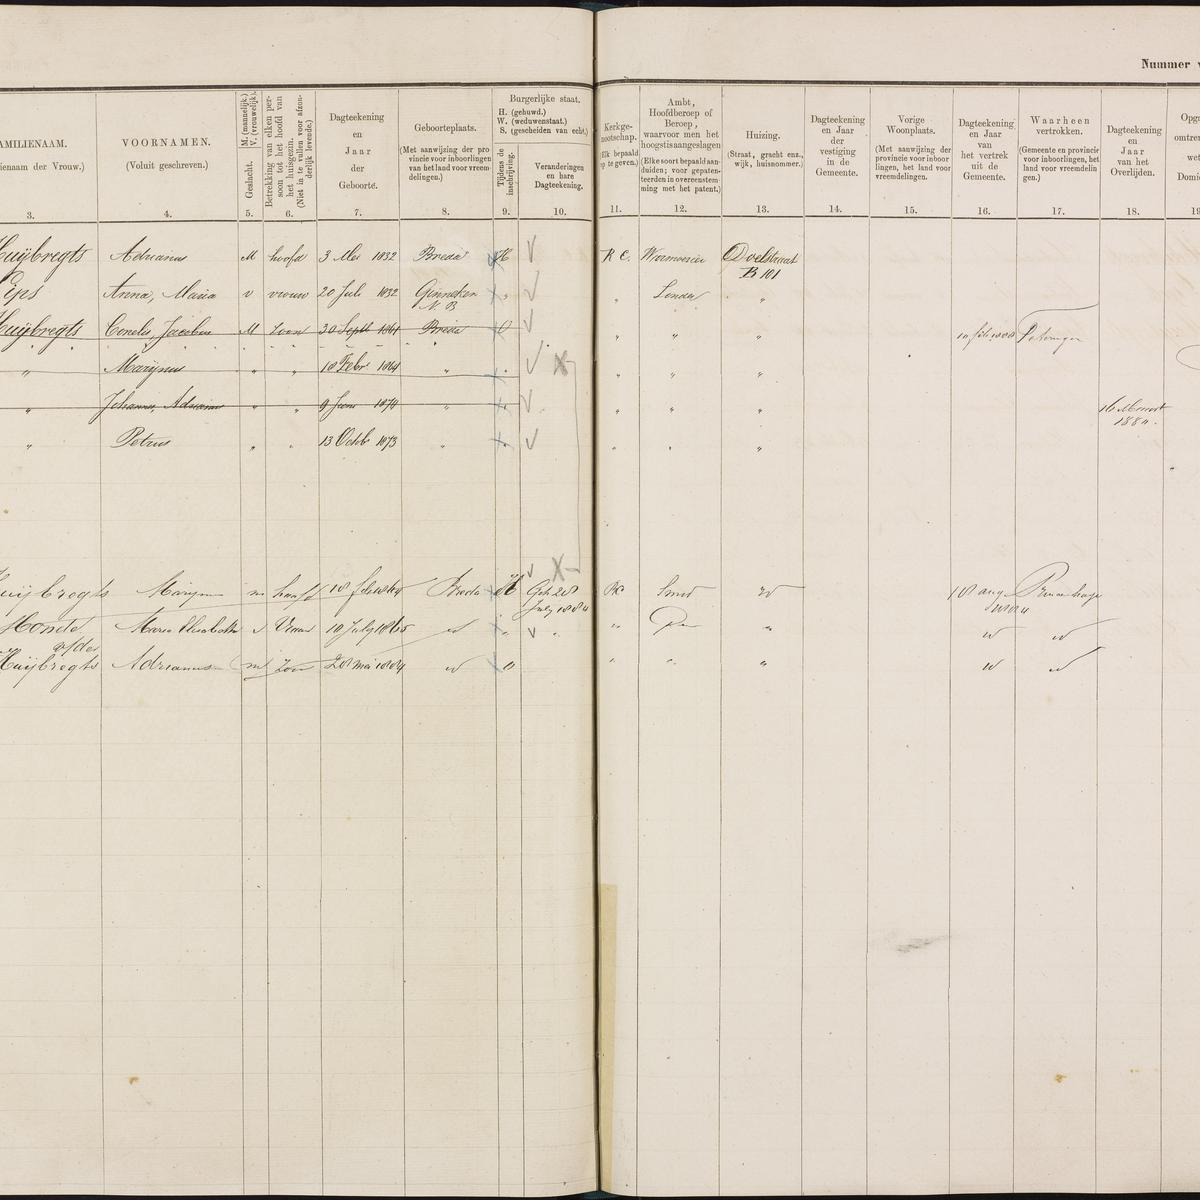 Population registry, Breda, 1880-1889, part 7, sheet 150